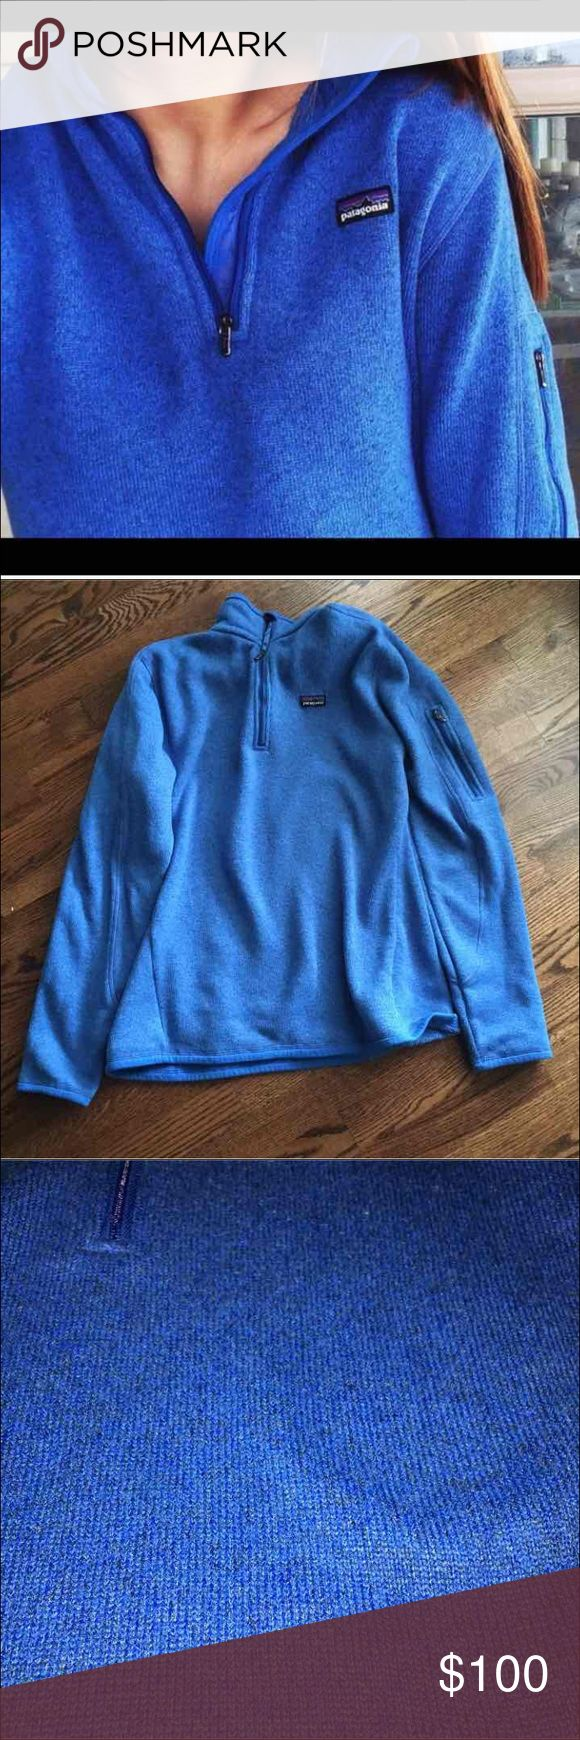 RARE royal blue patagonia better sweater This is a RARE color and great sweater. This jacket is in good condition with minor pilling. Although there is no size tag, i promise this is a medium patagonia :). Just selling because it's a little too small for me! Patagonia Jackets & Coats